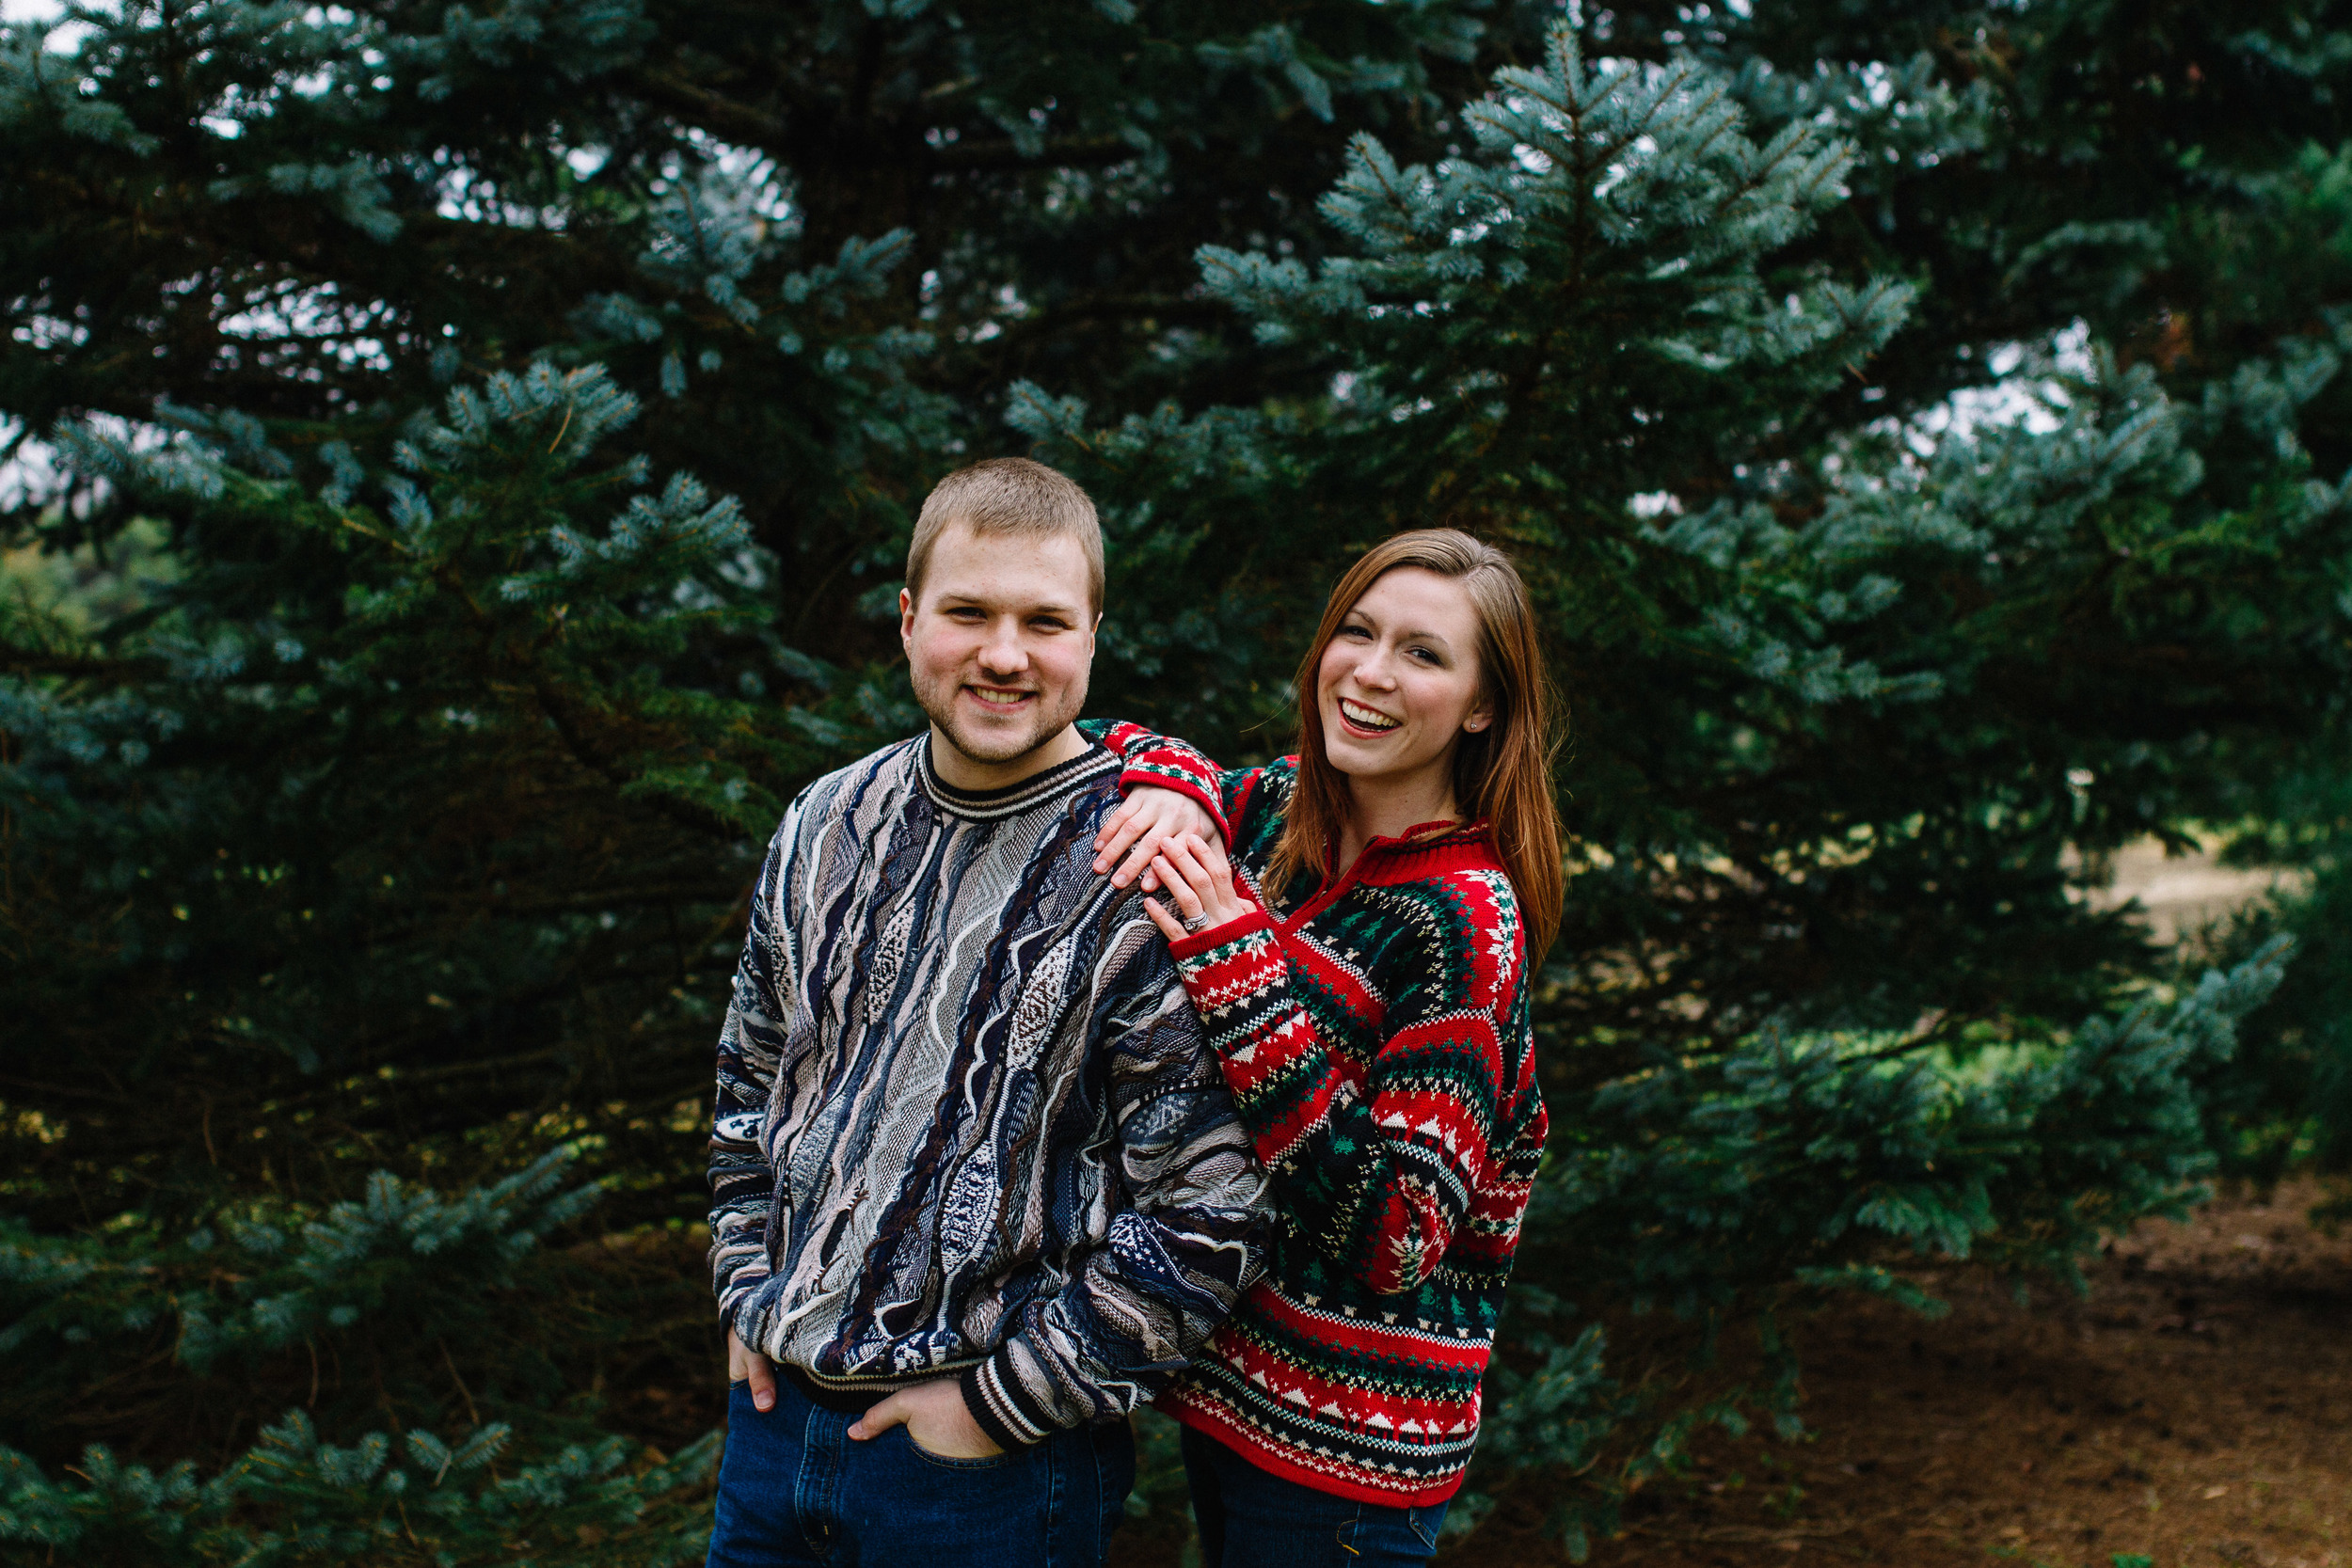 Corrie Ann Photography - Ugly Christmas Sweaters-6.jpg